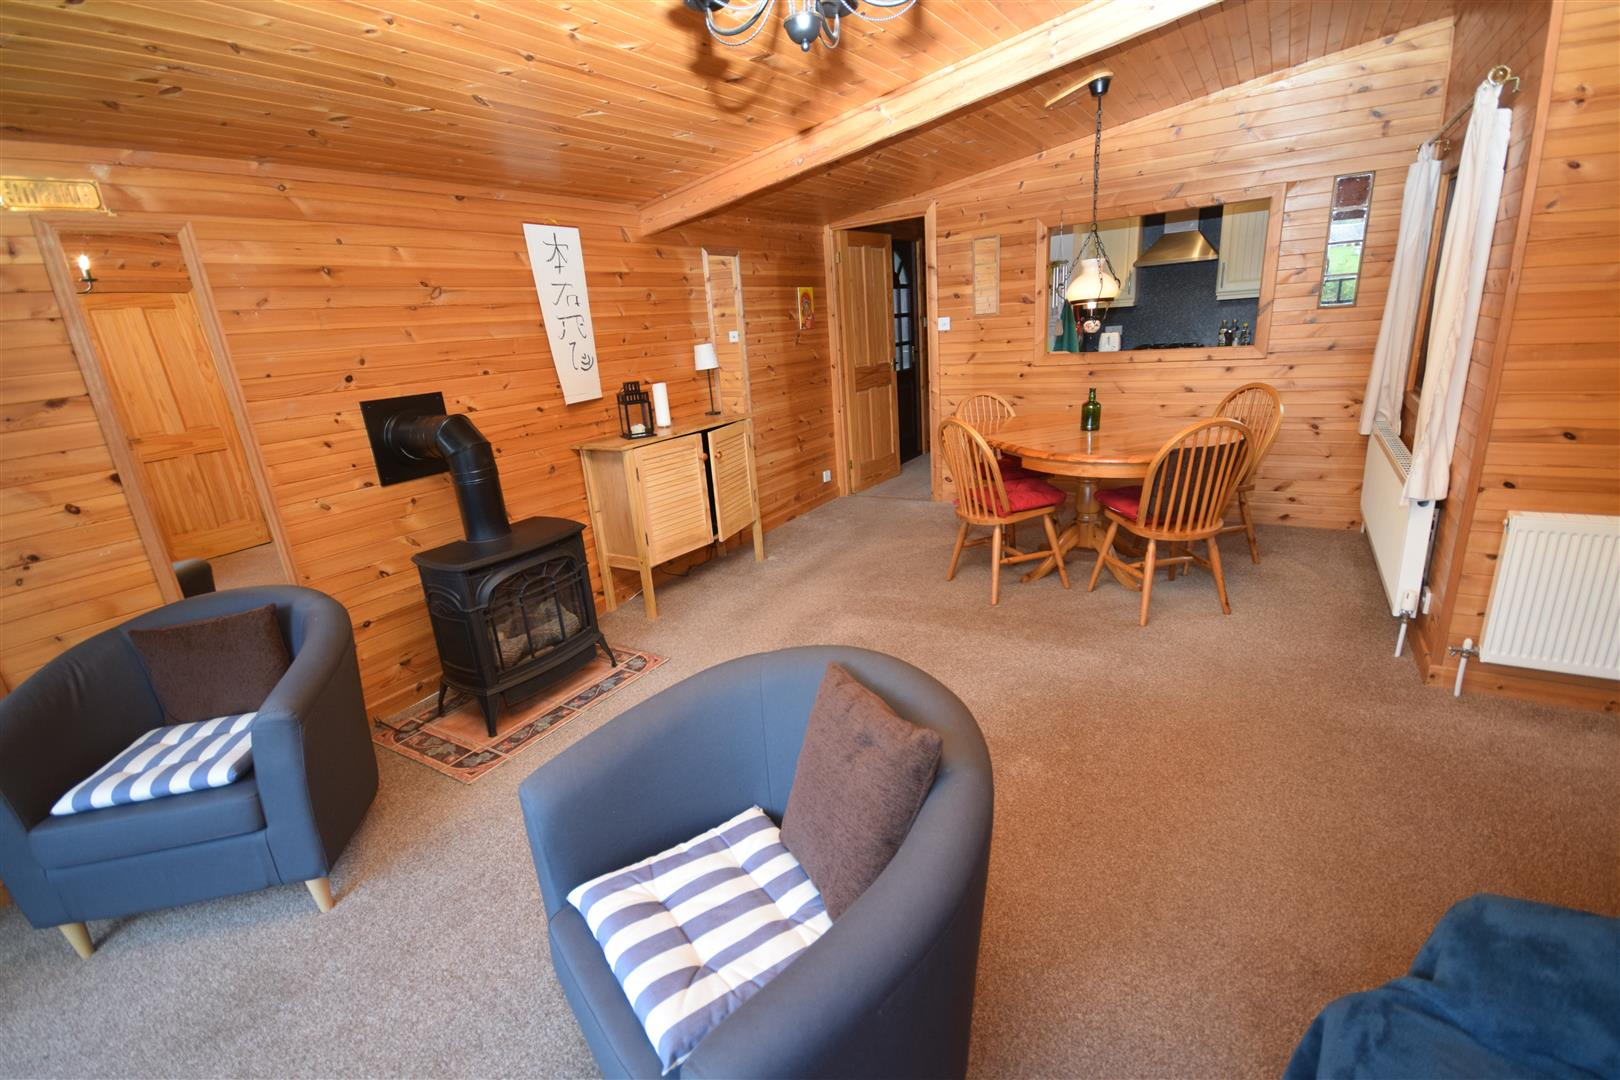 Pine Lodge, Rivertilt Caravan Park, Invertilt Road, Bridge Of Tilt, Blair Atholl, Pitlochry, Perthshire, PH18 5TE, UK